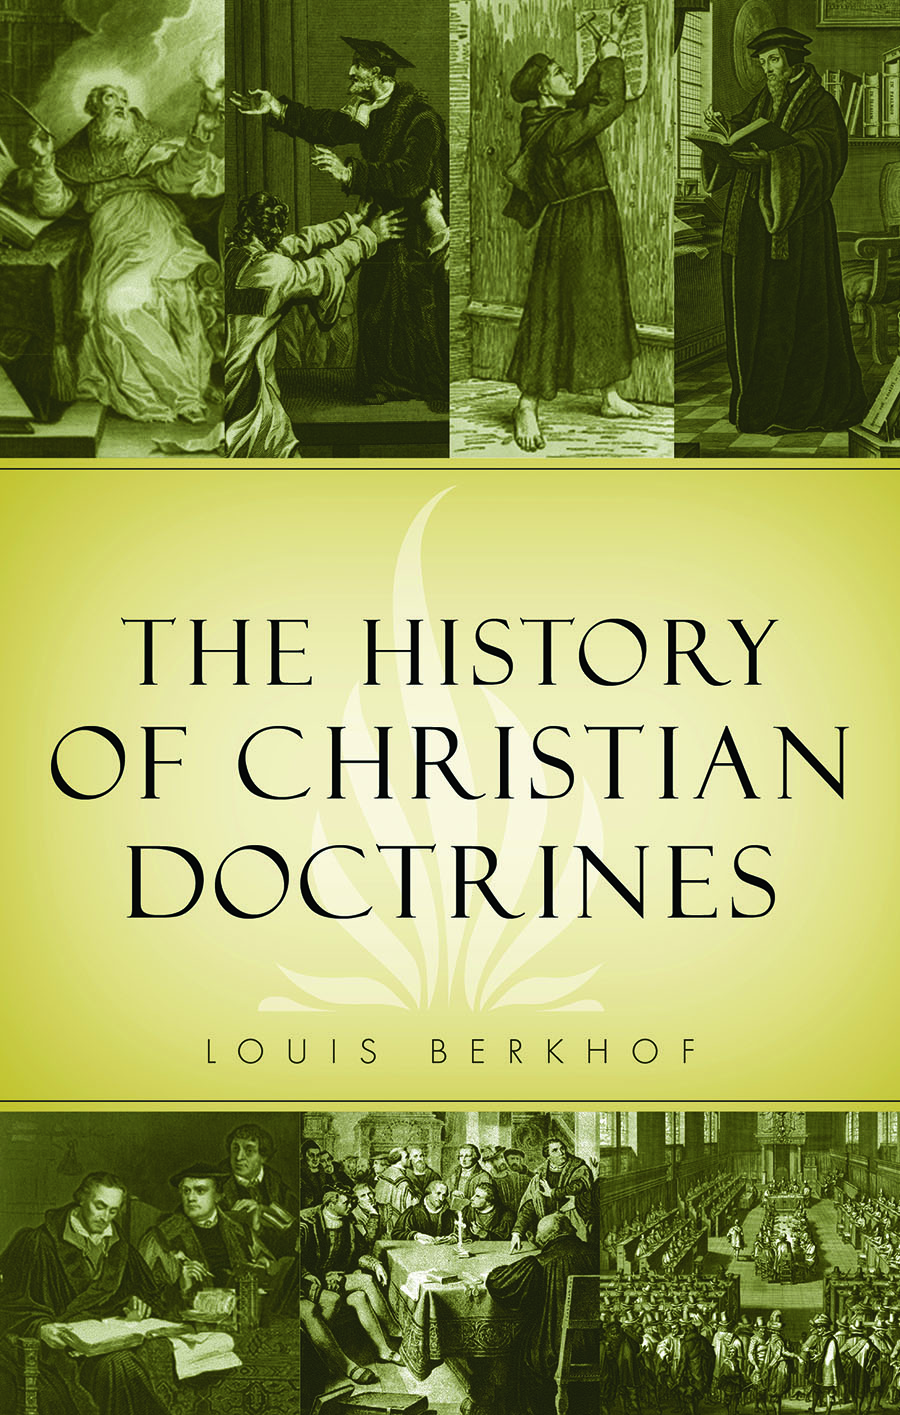 The History of Christian Doctrines